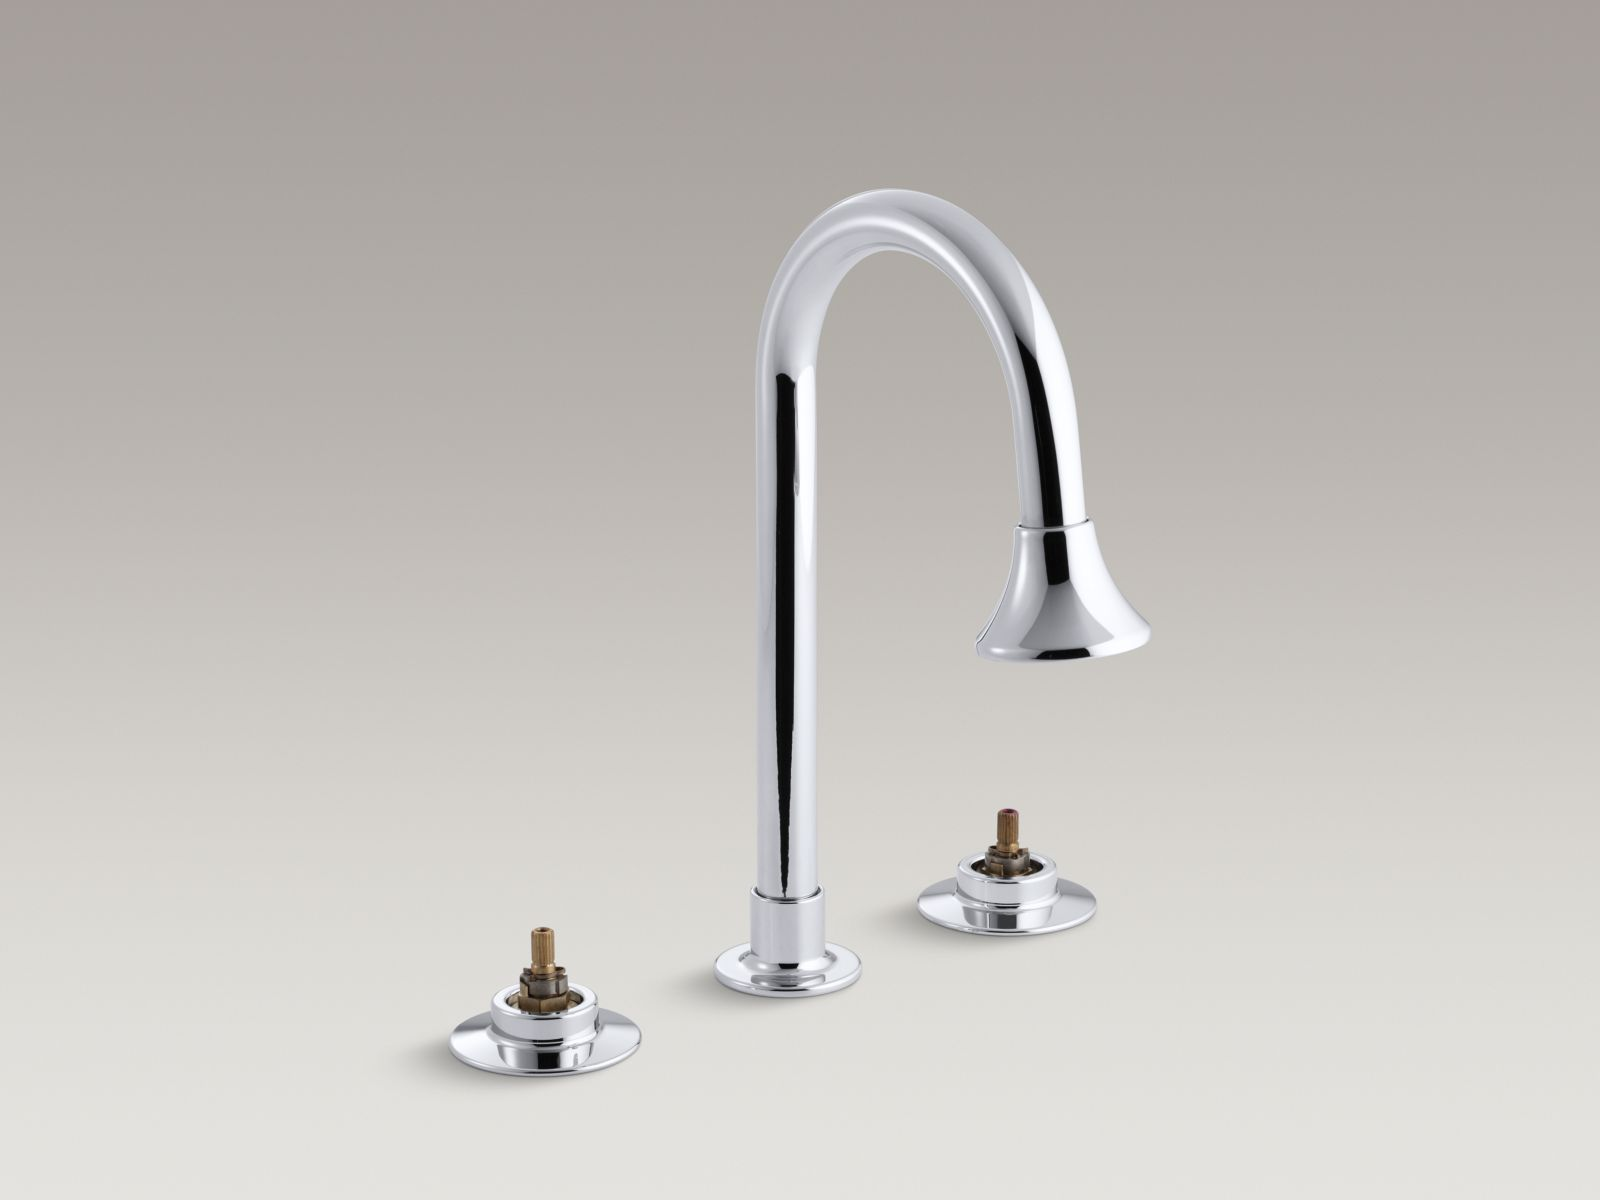 Kohler K-7303-KC-CP Triton Widespread Handle-less Commercial Bathroom Faucet with Rigid Connections and Rosespray Gooseneck Spout Polished Chrome